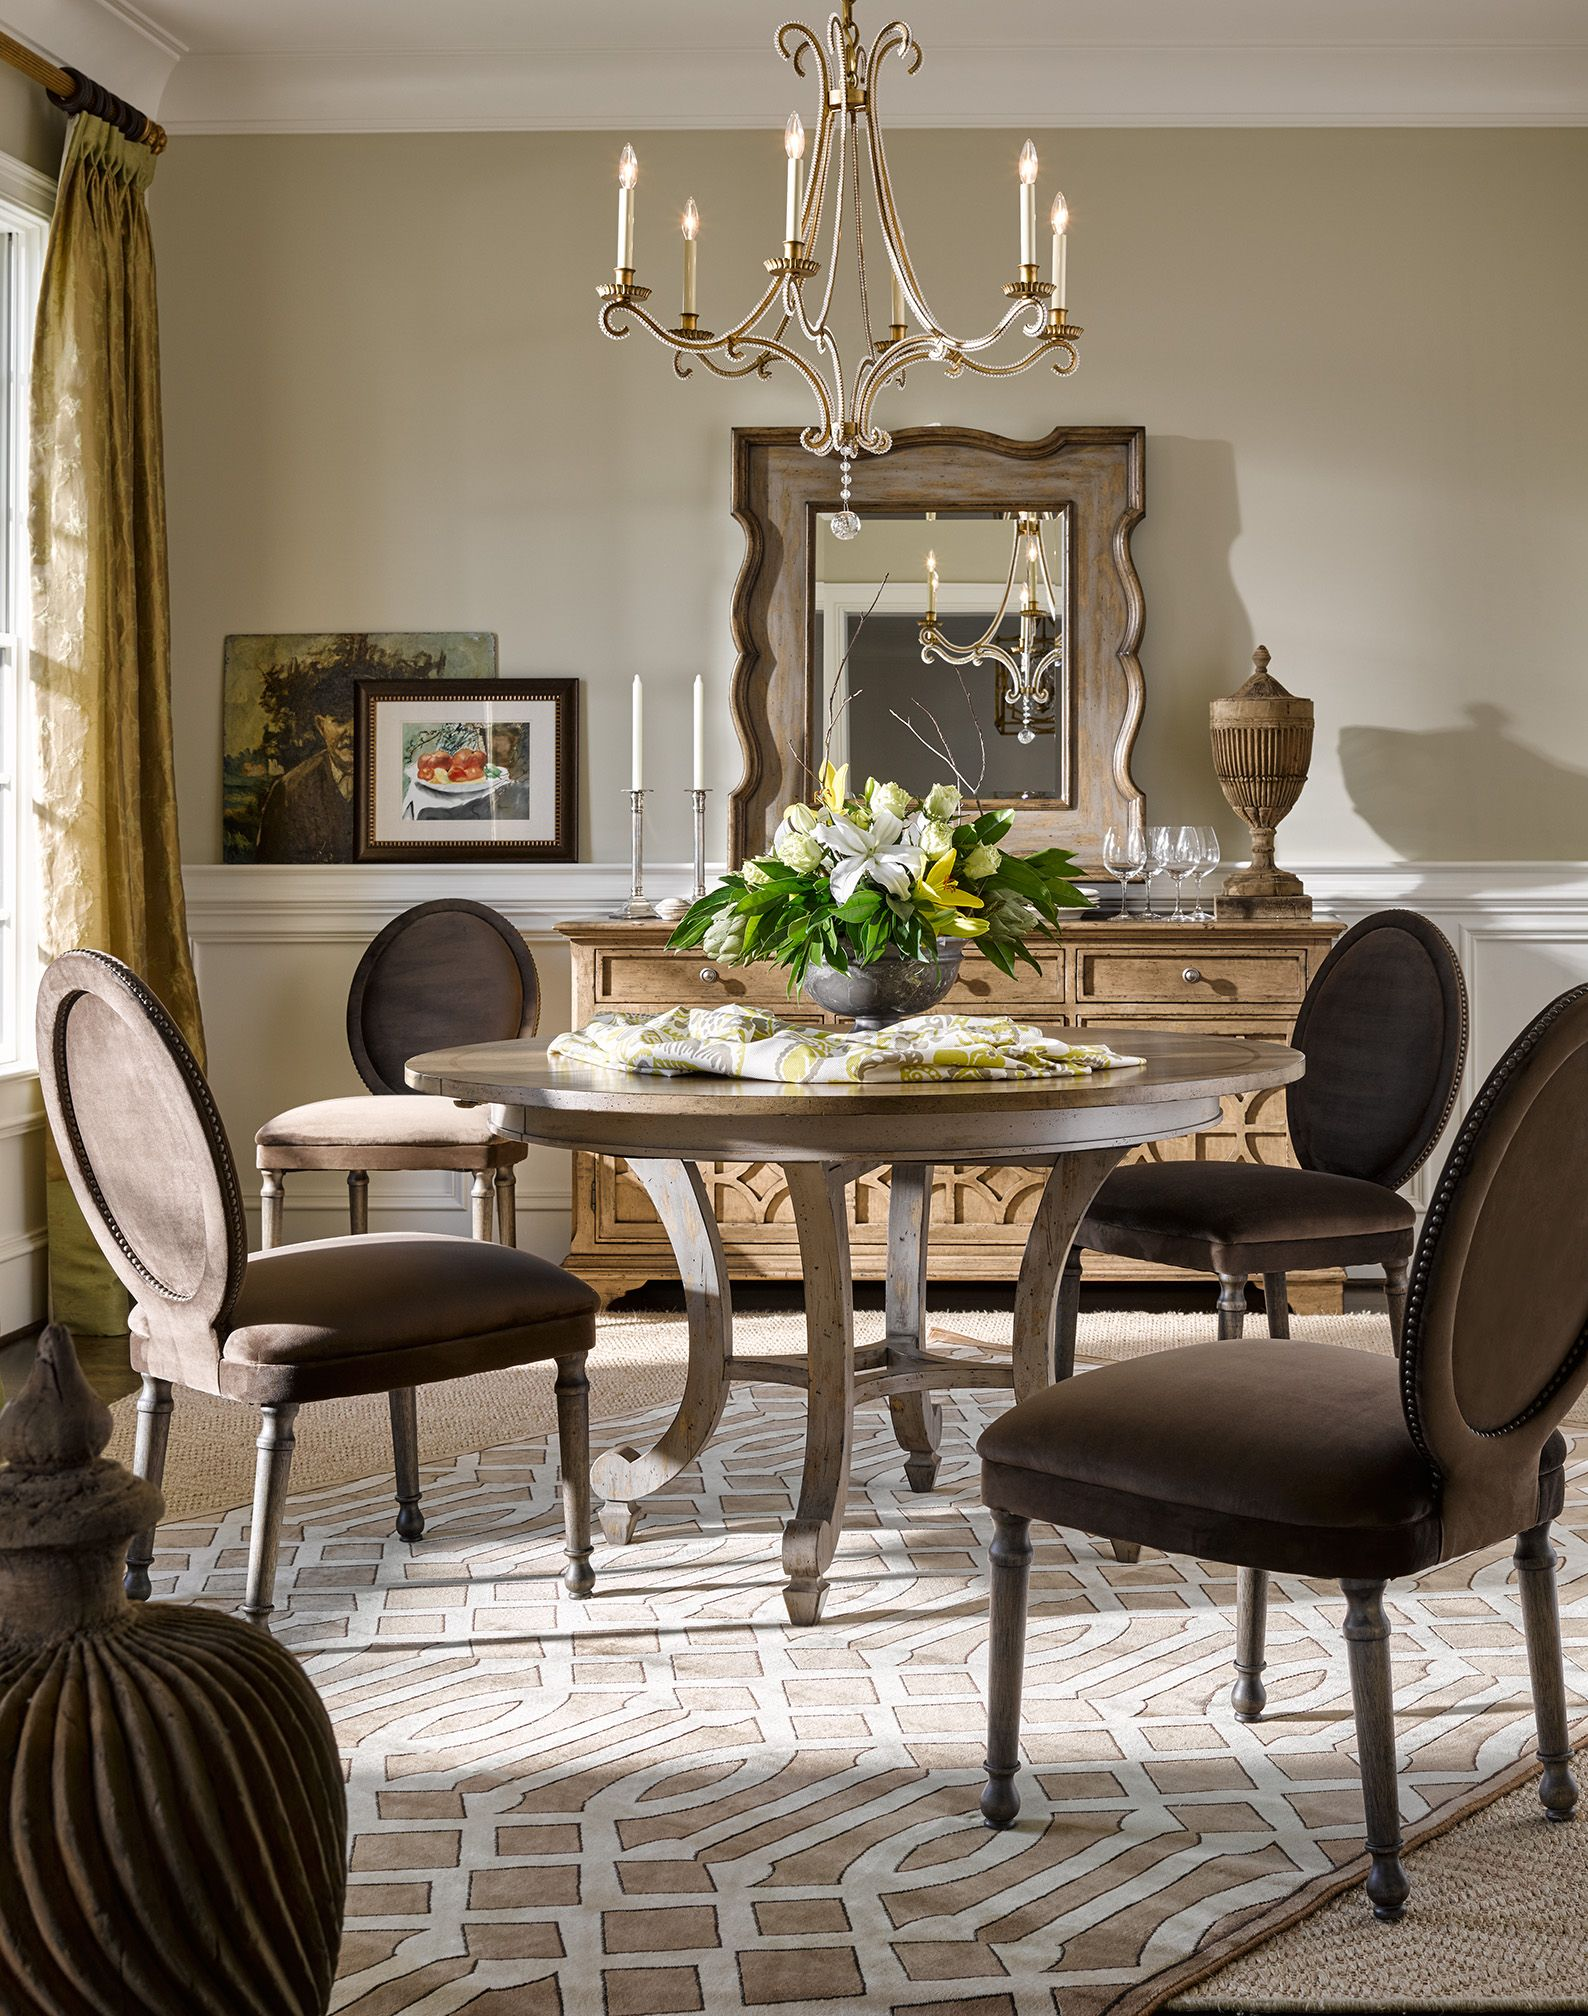 Pin By Classis Interiors On Classis Interiors Decor Dining